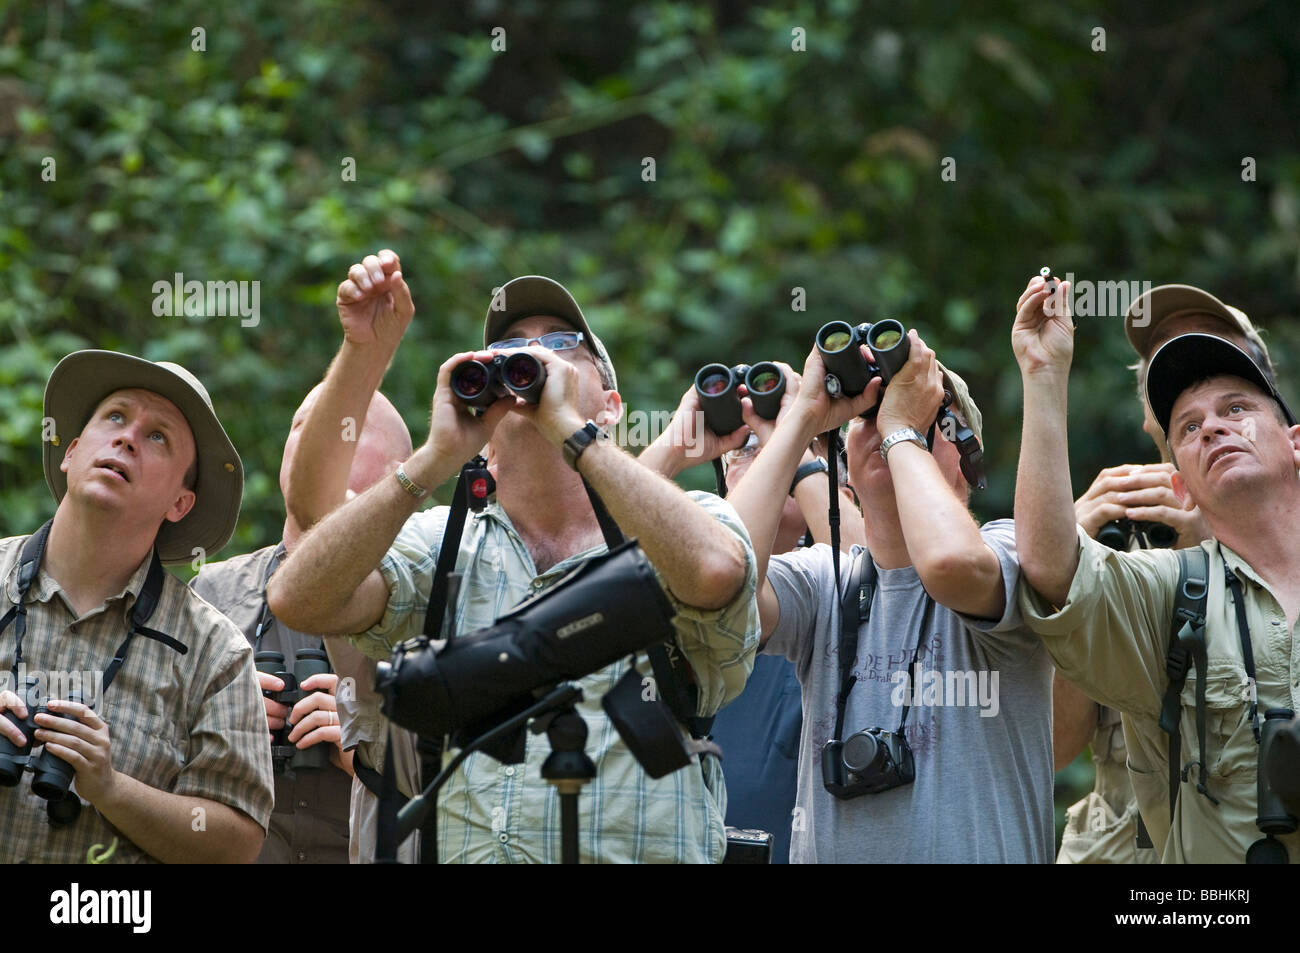 Forest birding in Subic Luzon Philippines - Stock Image